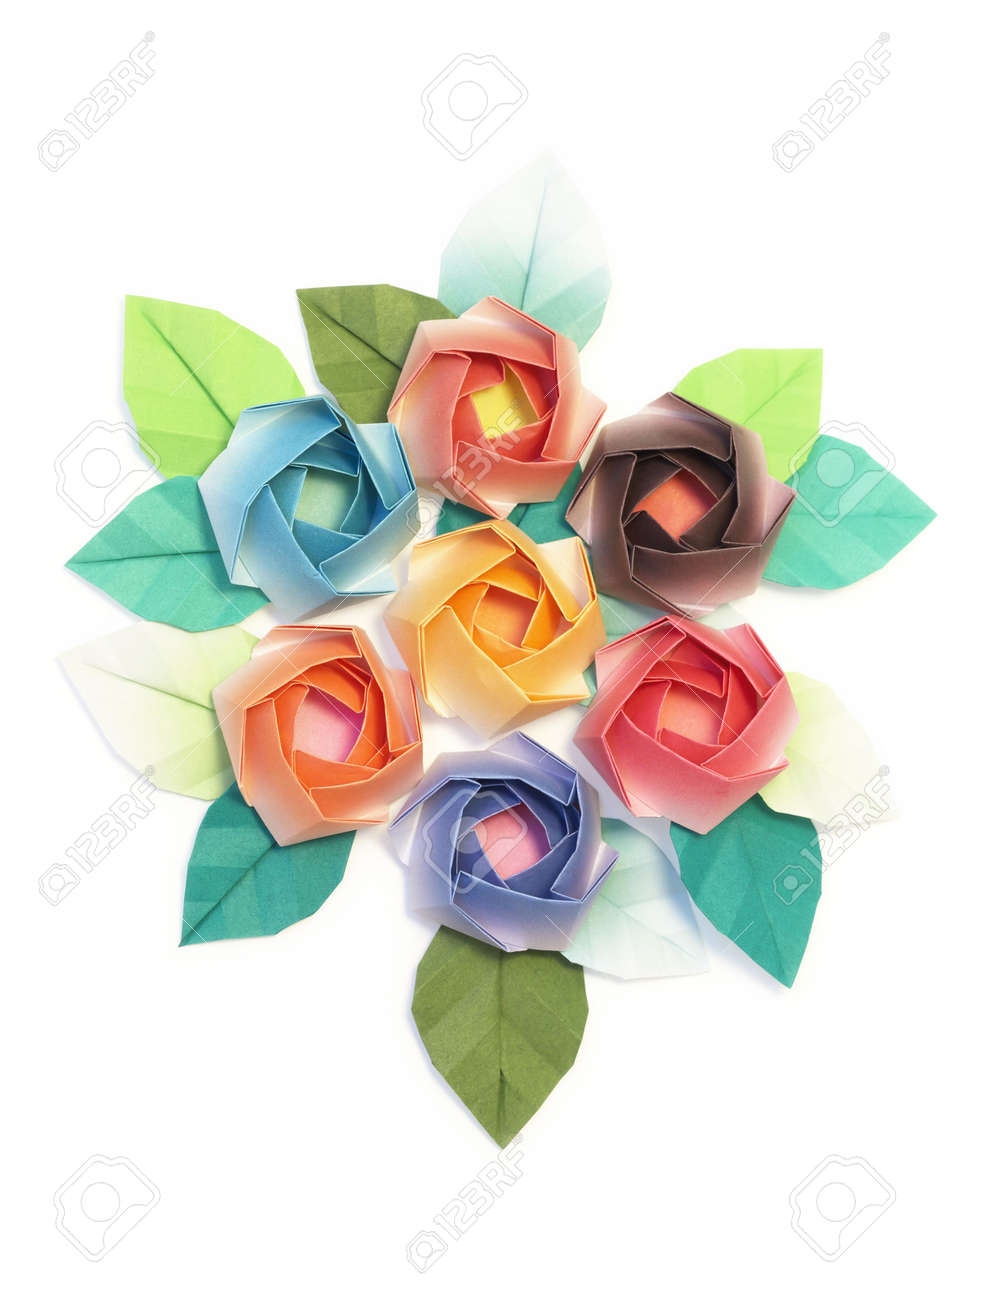 7 origami roses decoration on a white background Stock Photo - 3645149